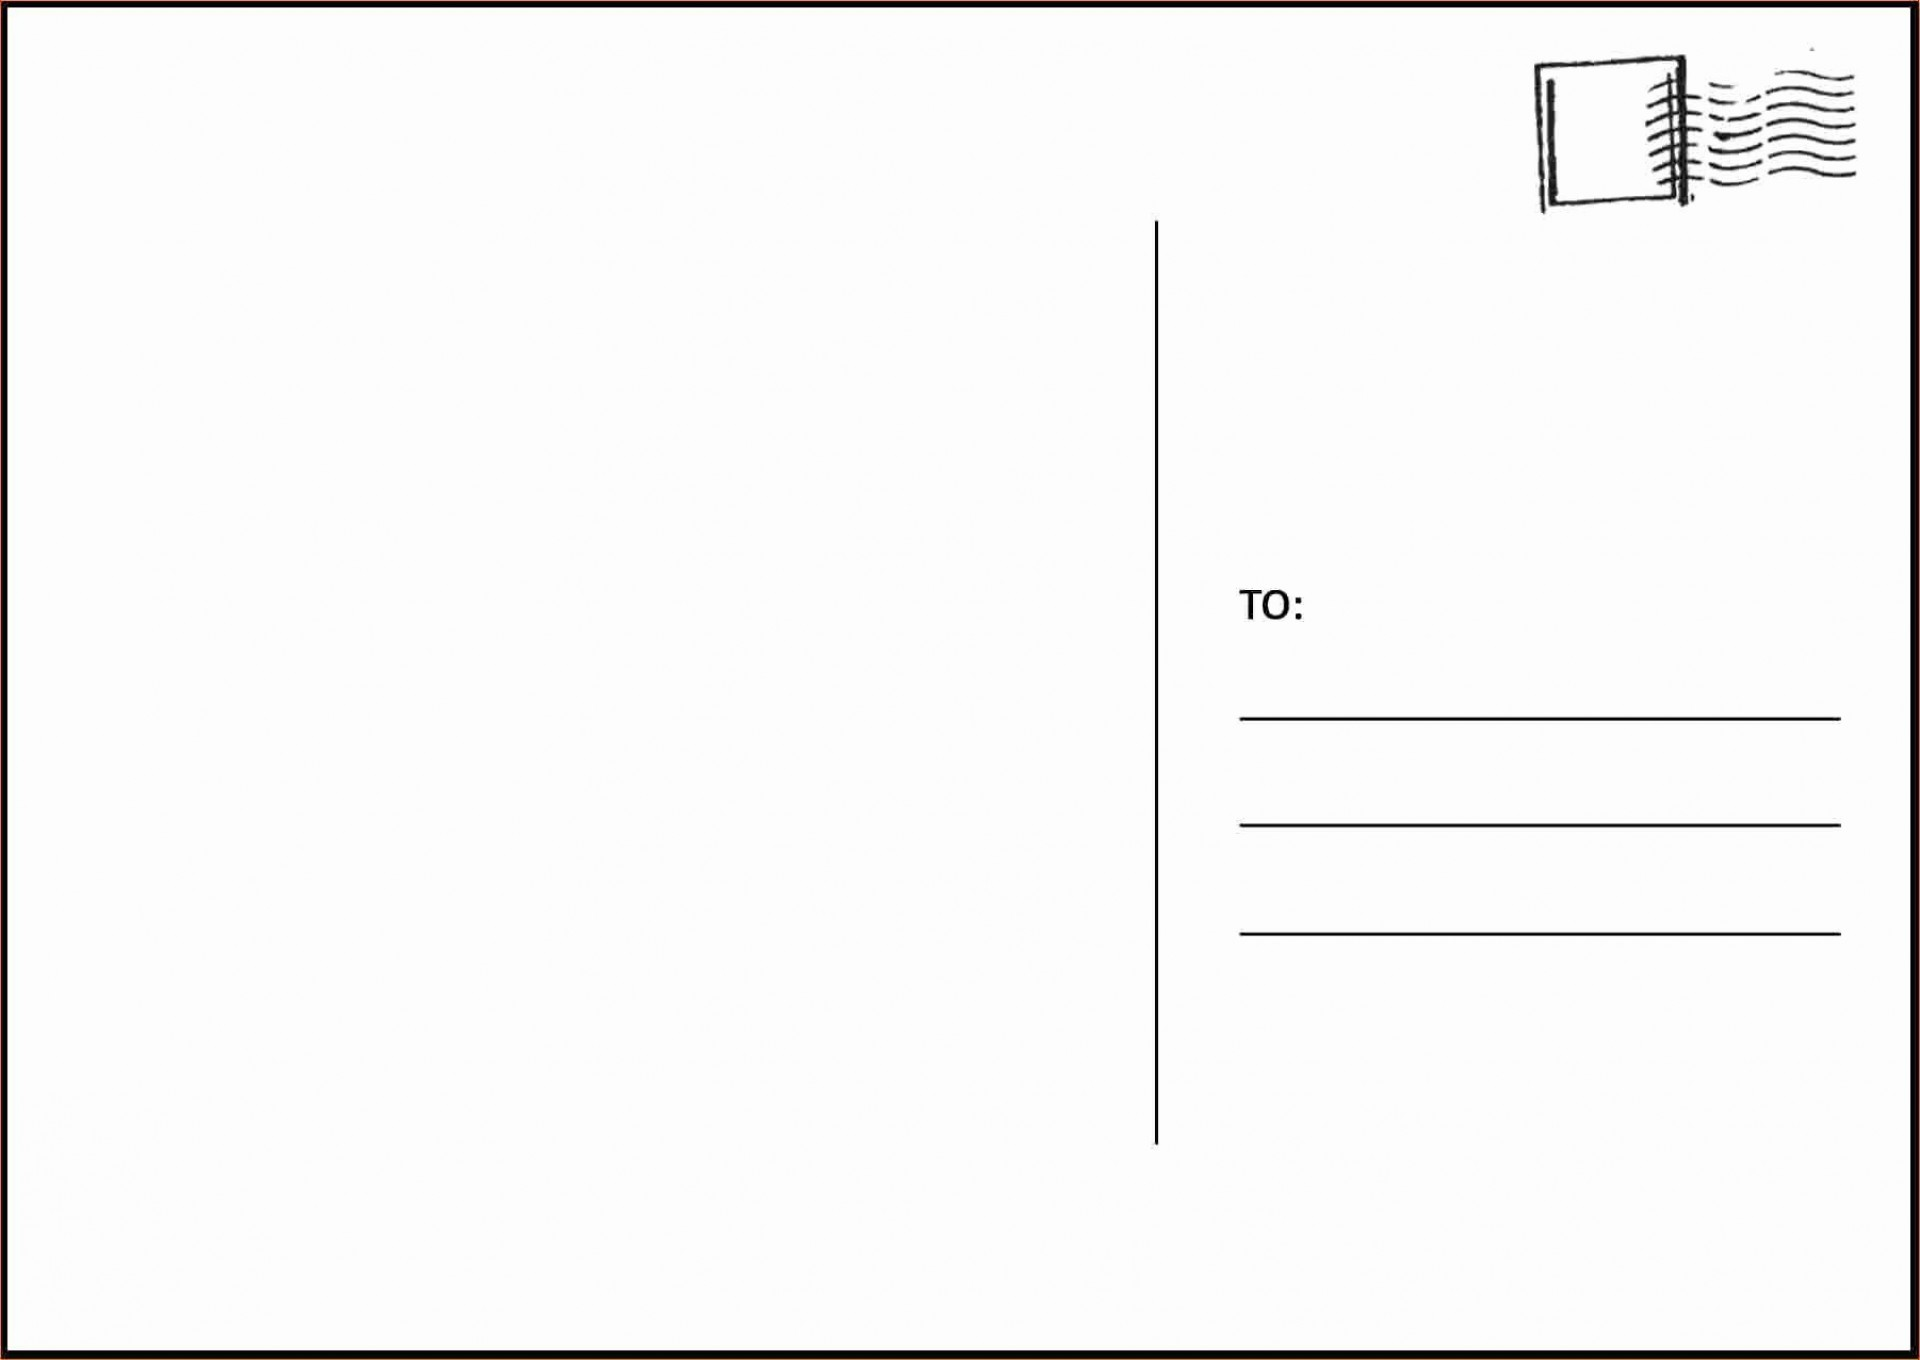 003 Amazing Postcard Layout For Microsoft Word Picture  4 Template1920